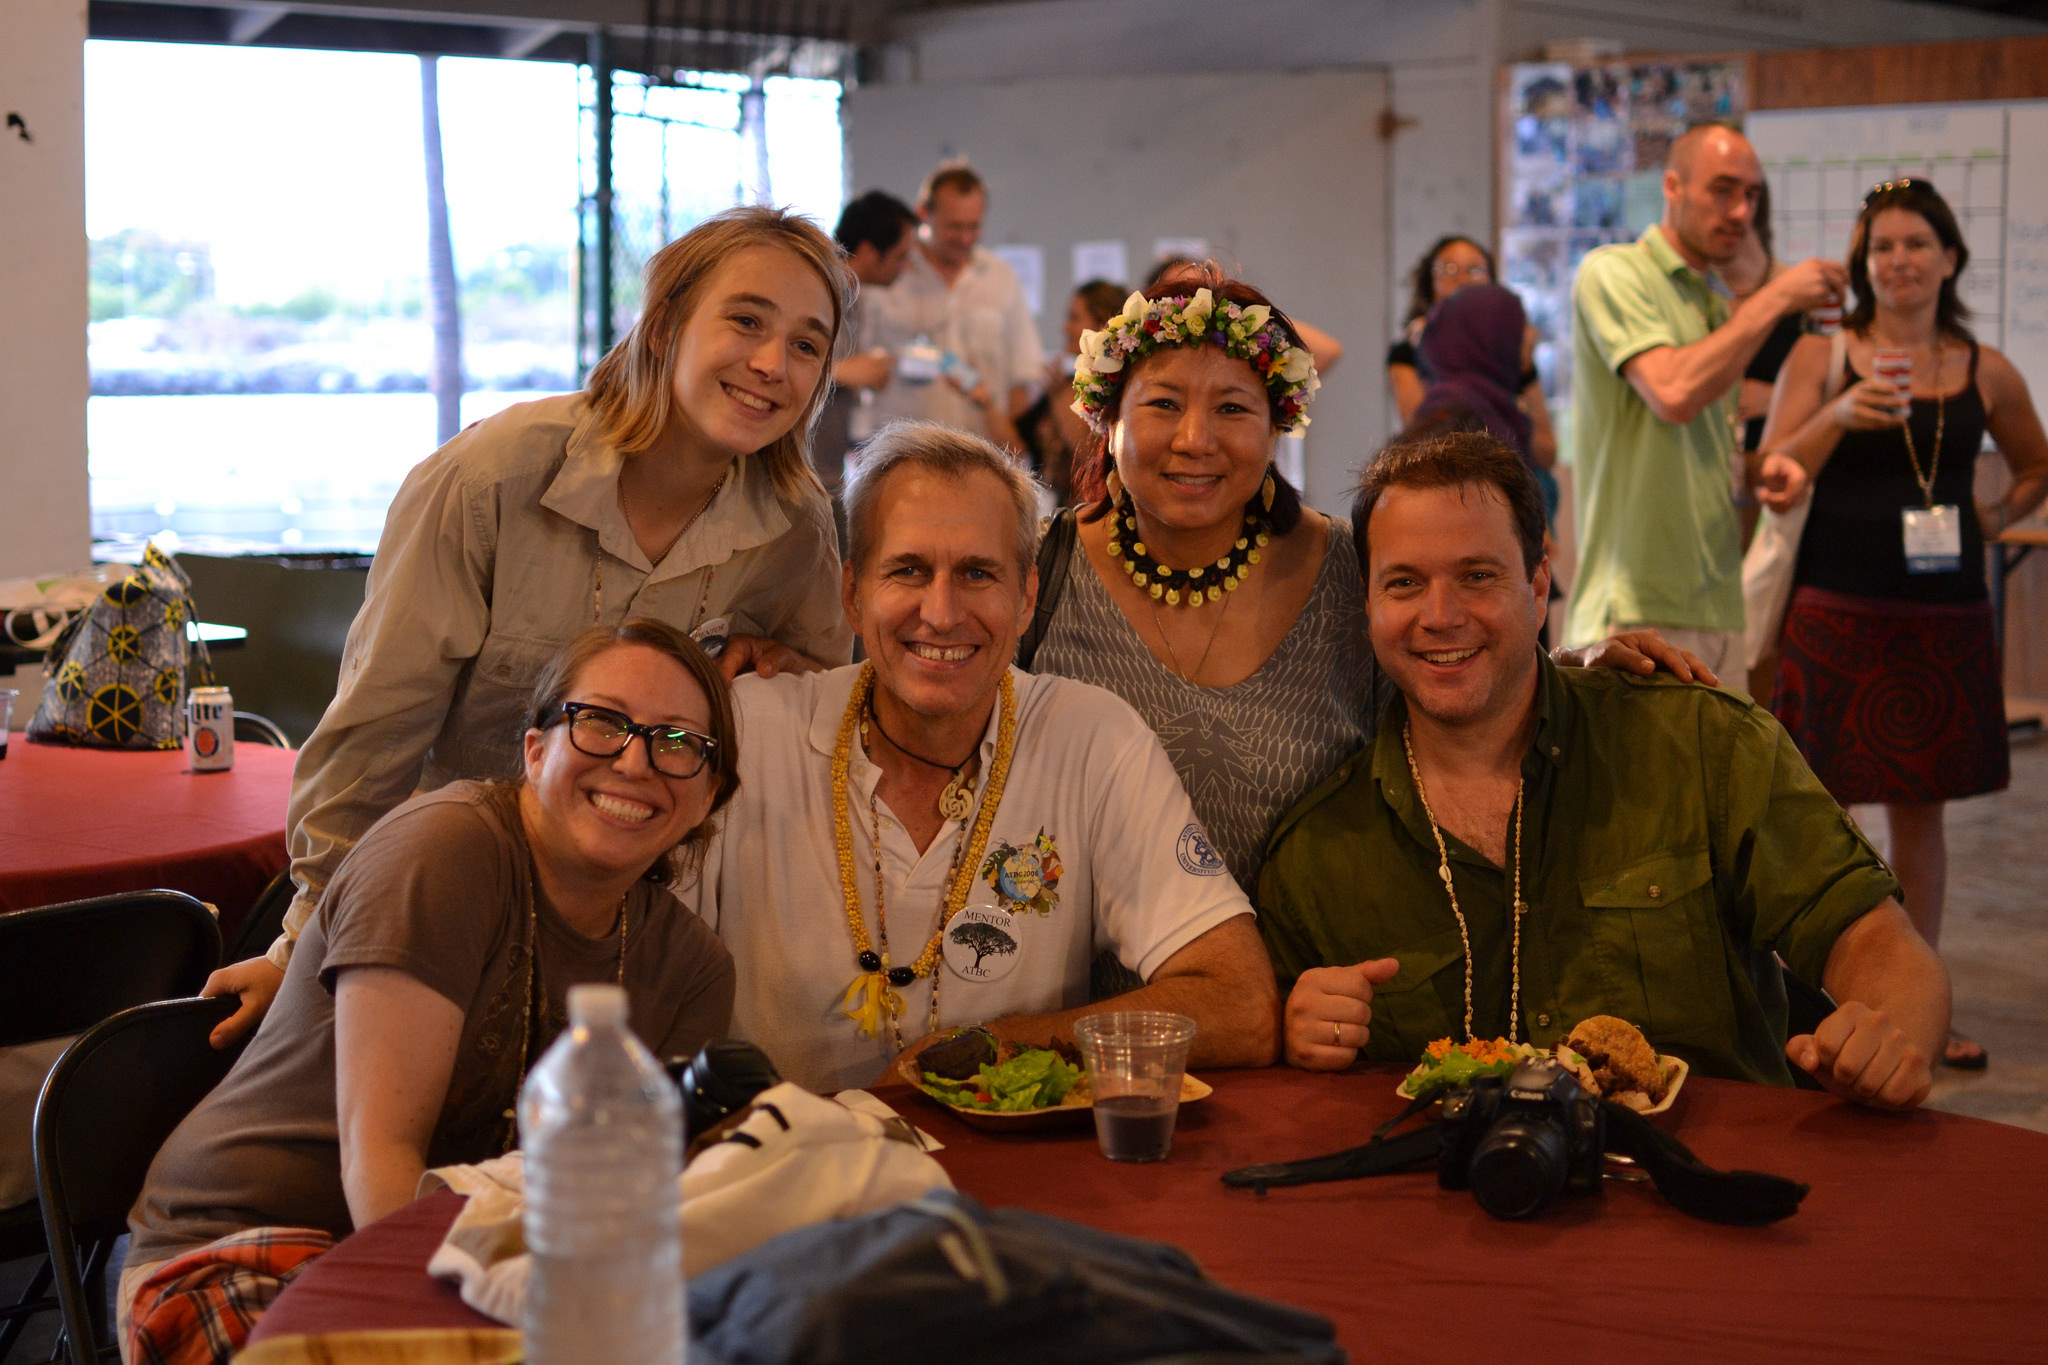 President SECSCI Chapter Erin Kuprewicz, Member-at-Large Alice Hughes, Chair Meeting Commitee Pierre-Michel Forget, Lee-Ann Choy (PCO) and Member-at-Large Norbert Kunert. Photo (c) Nicole Choy, 2015.